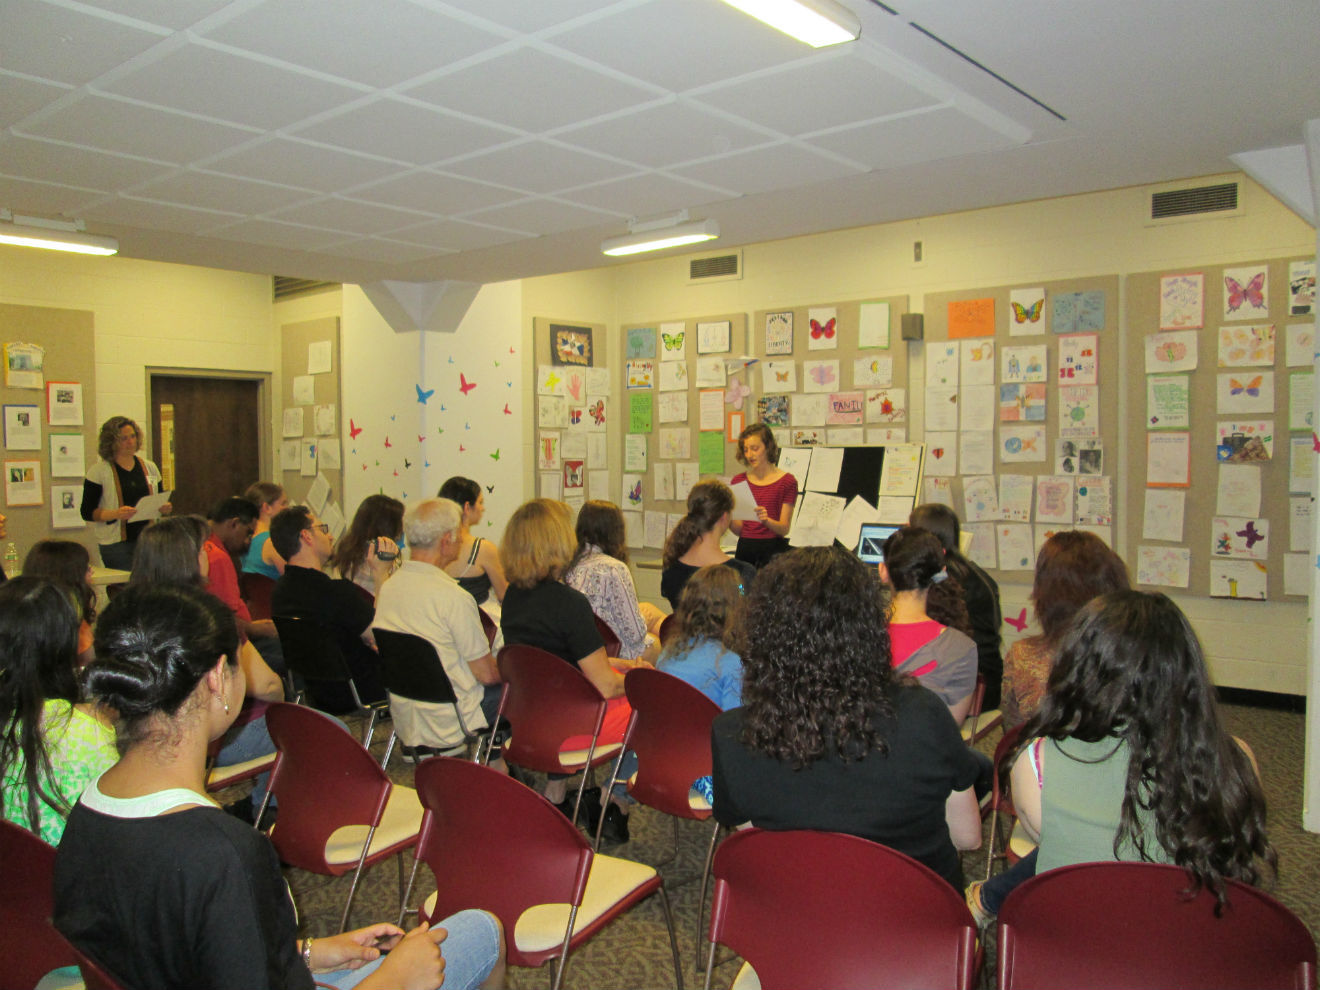 14ca6355334c26c53f49_Awards_ceremony_for_Big_Read_art_and_writings_by_Scotch_Plains-Fanwood_students_2.jpg